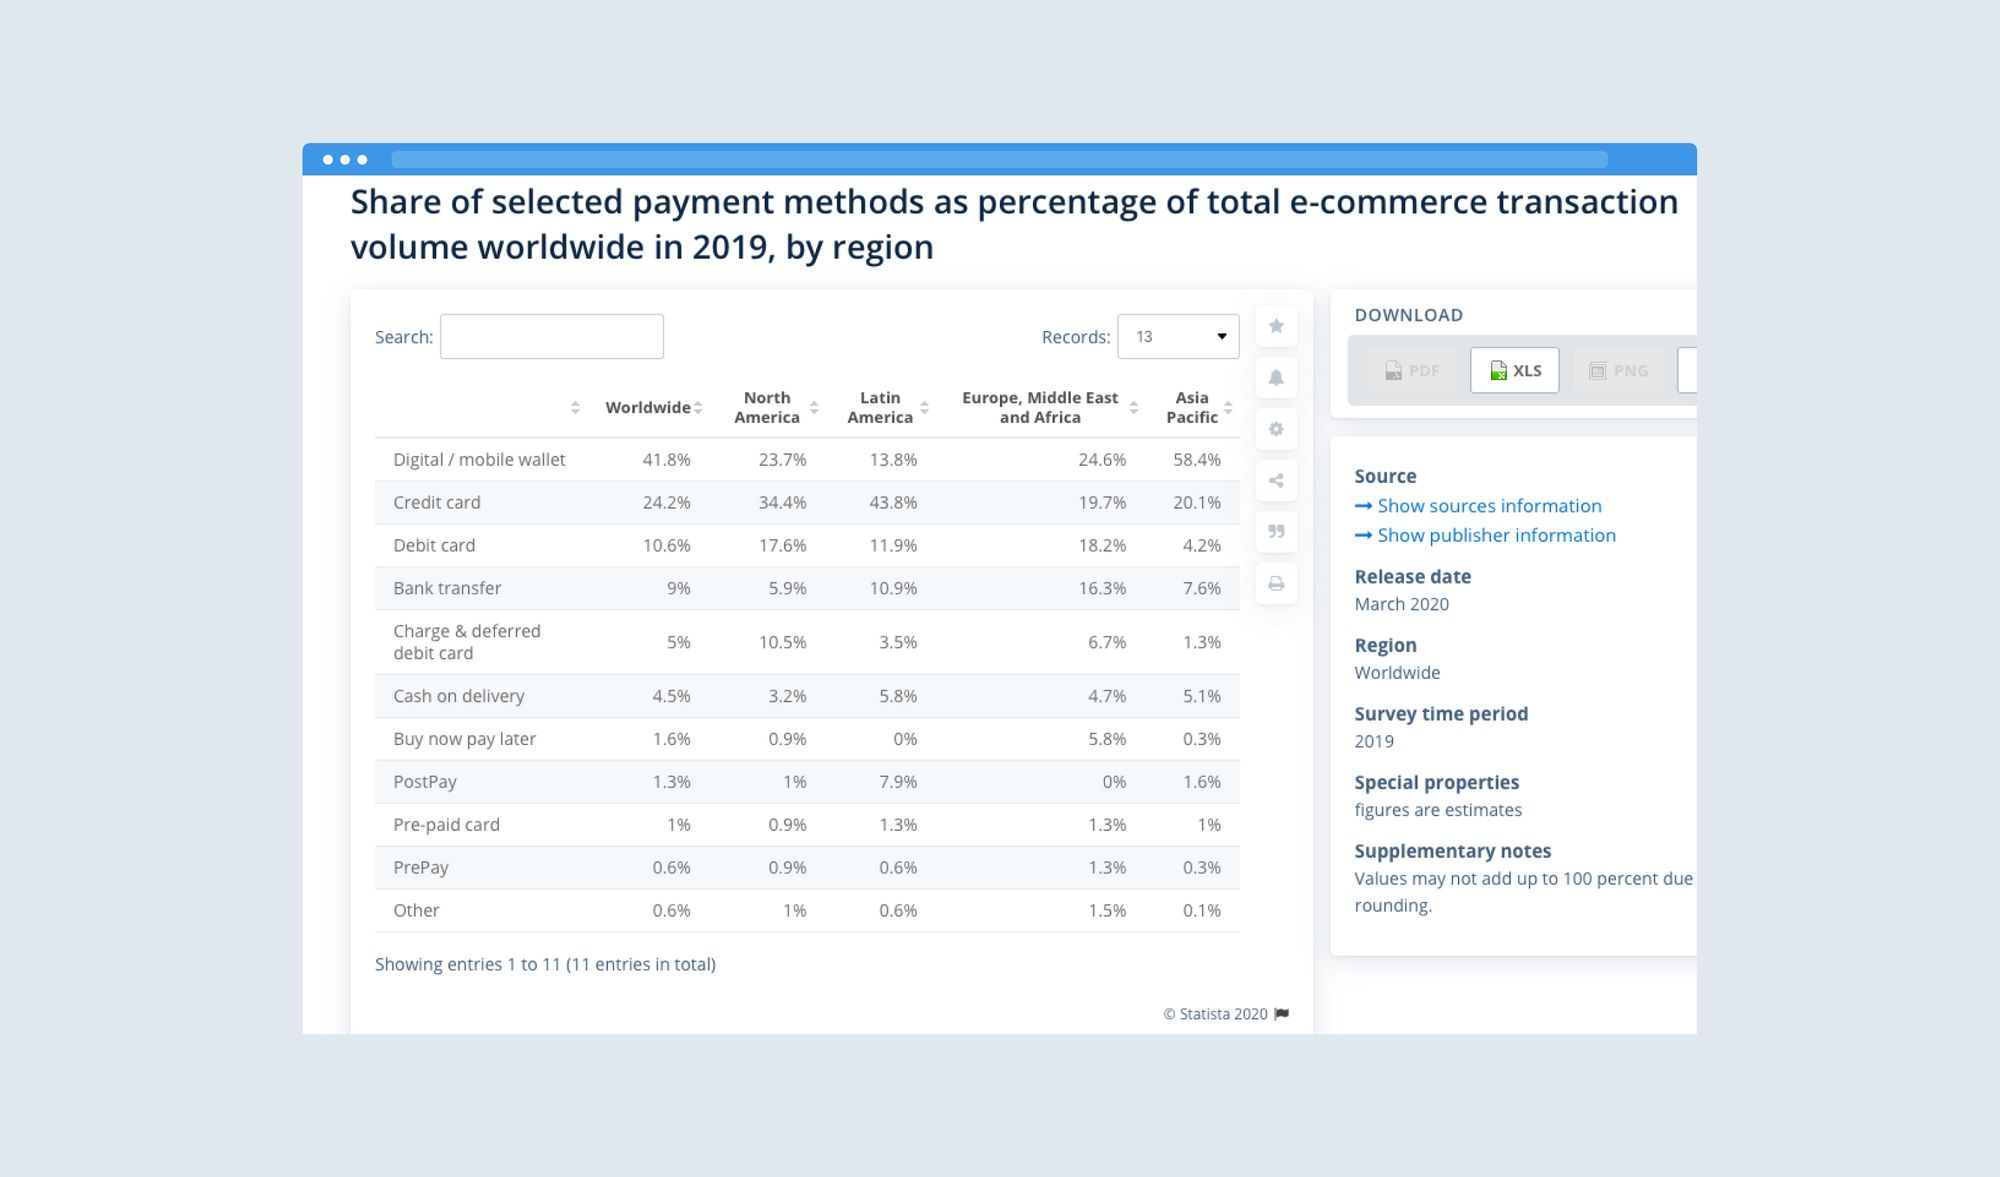 Global e-commerce payment methods 2019, by share of transaction volume